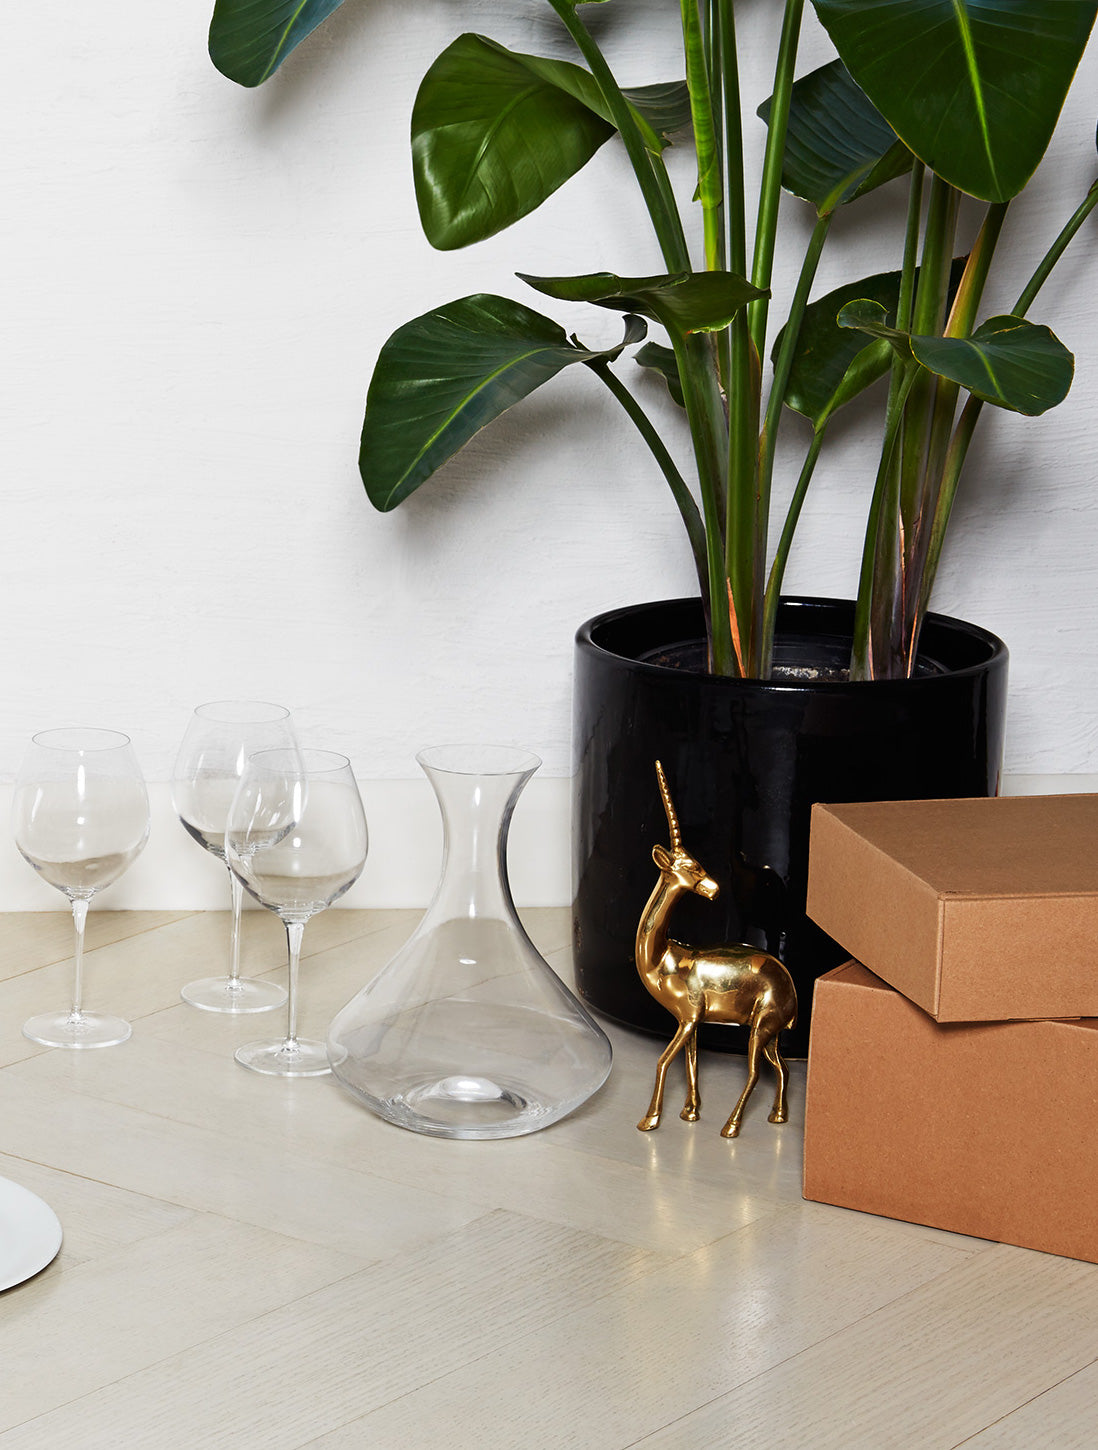 Snowe Glassware and boxes